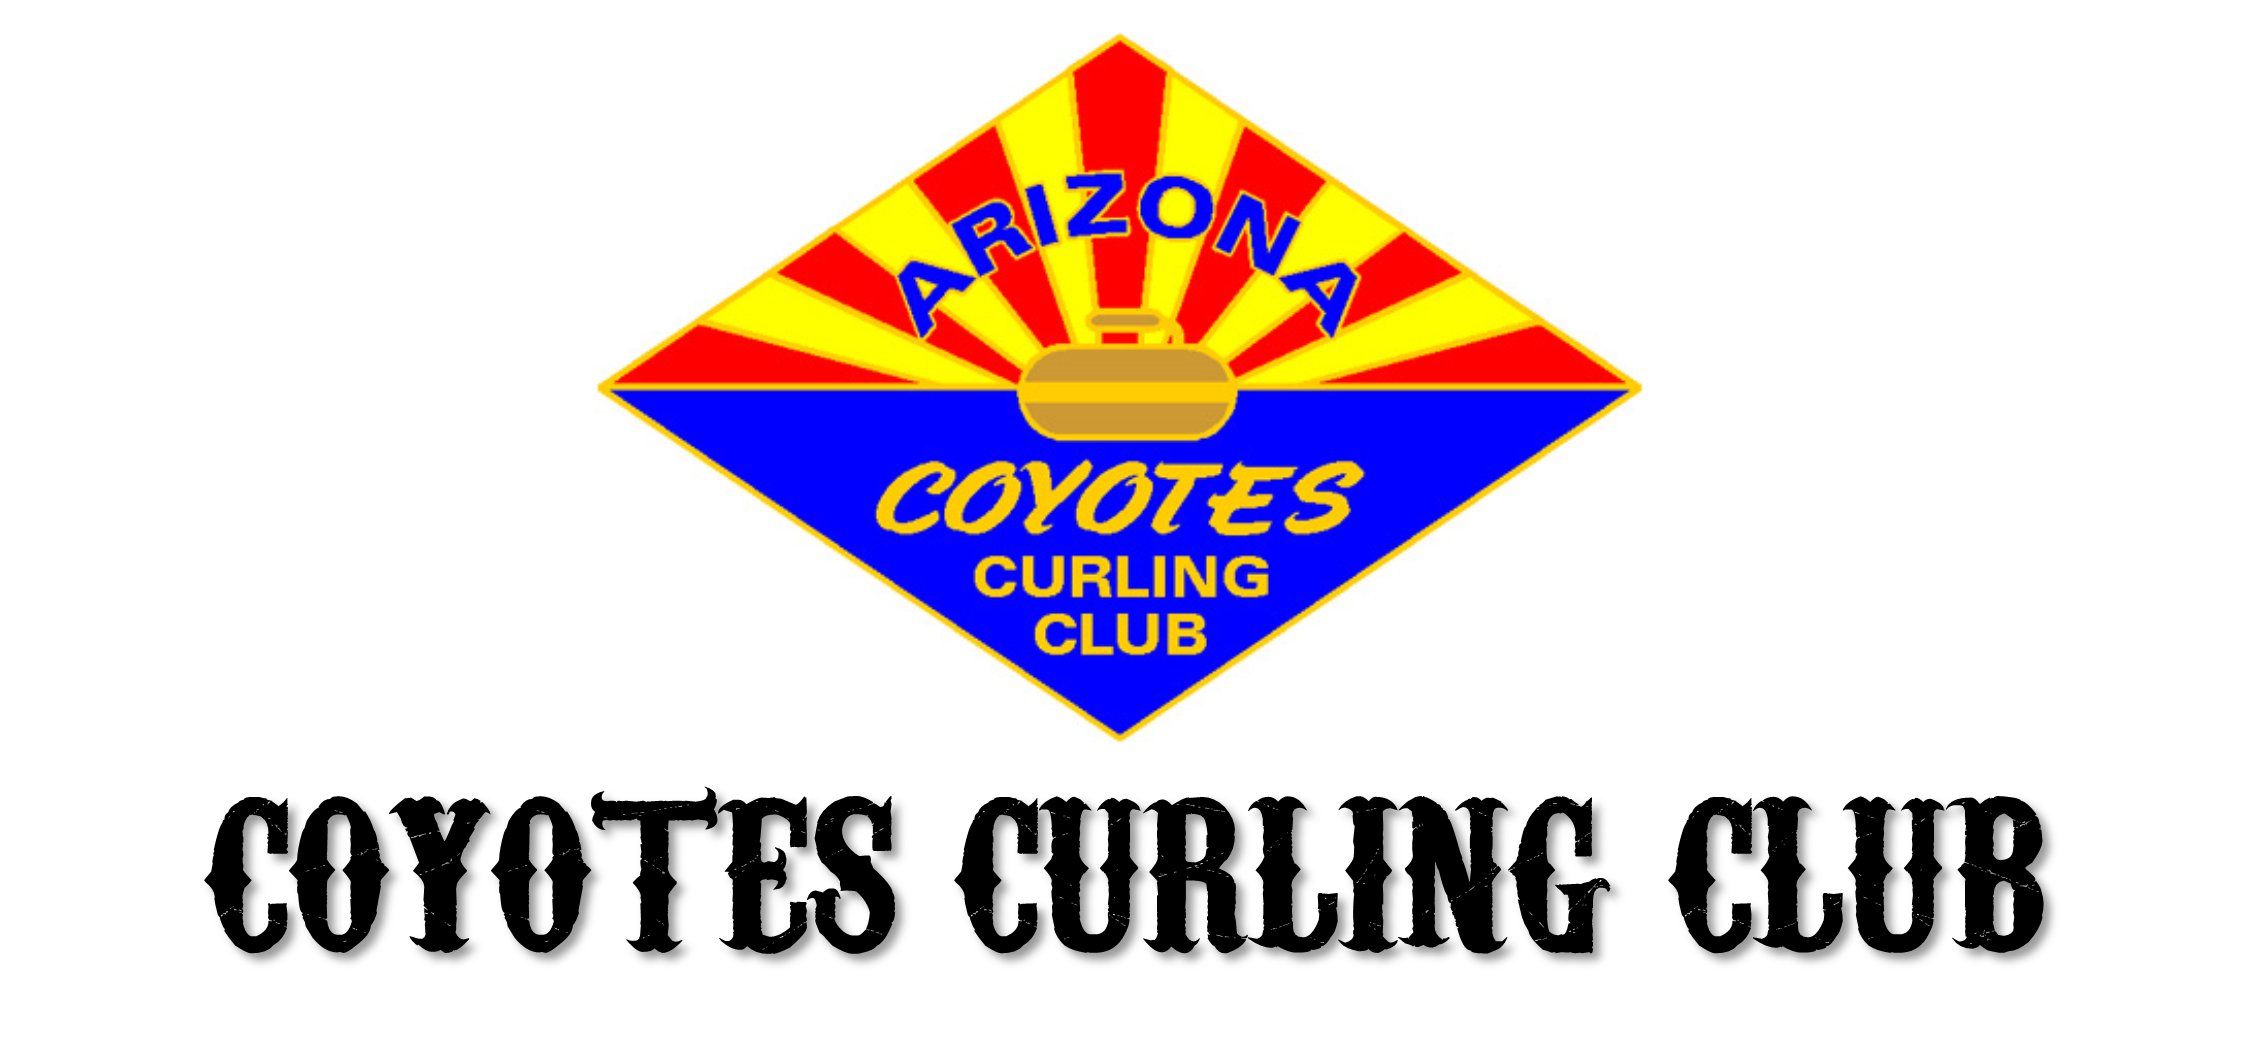 Coyotes Curling Club